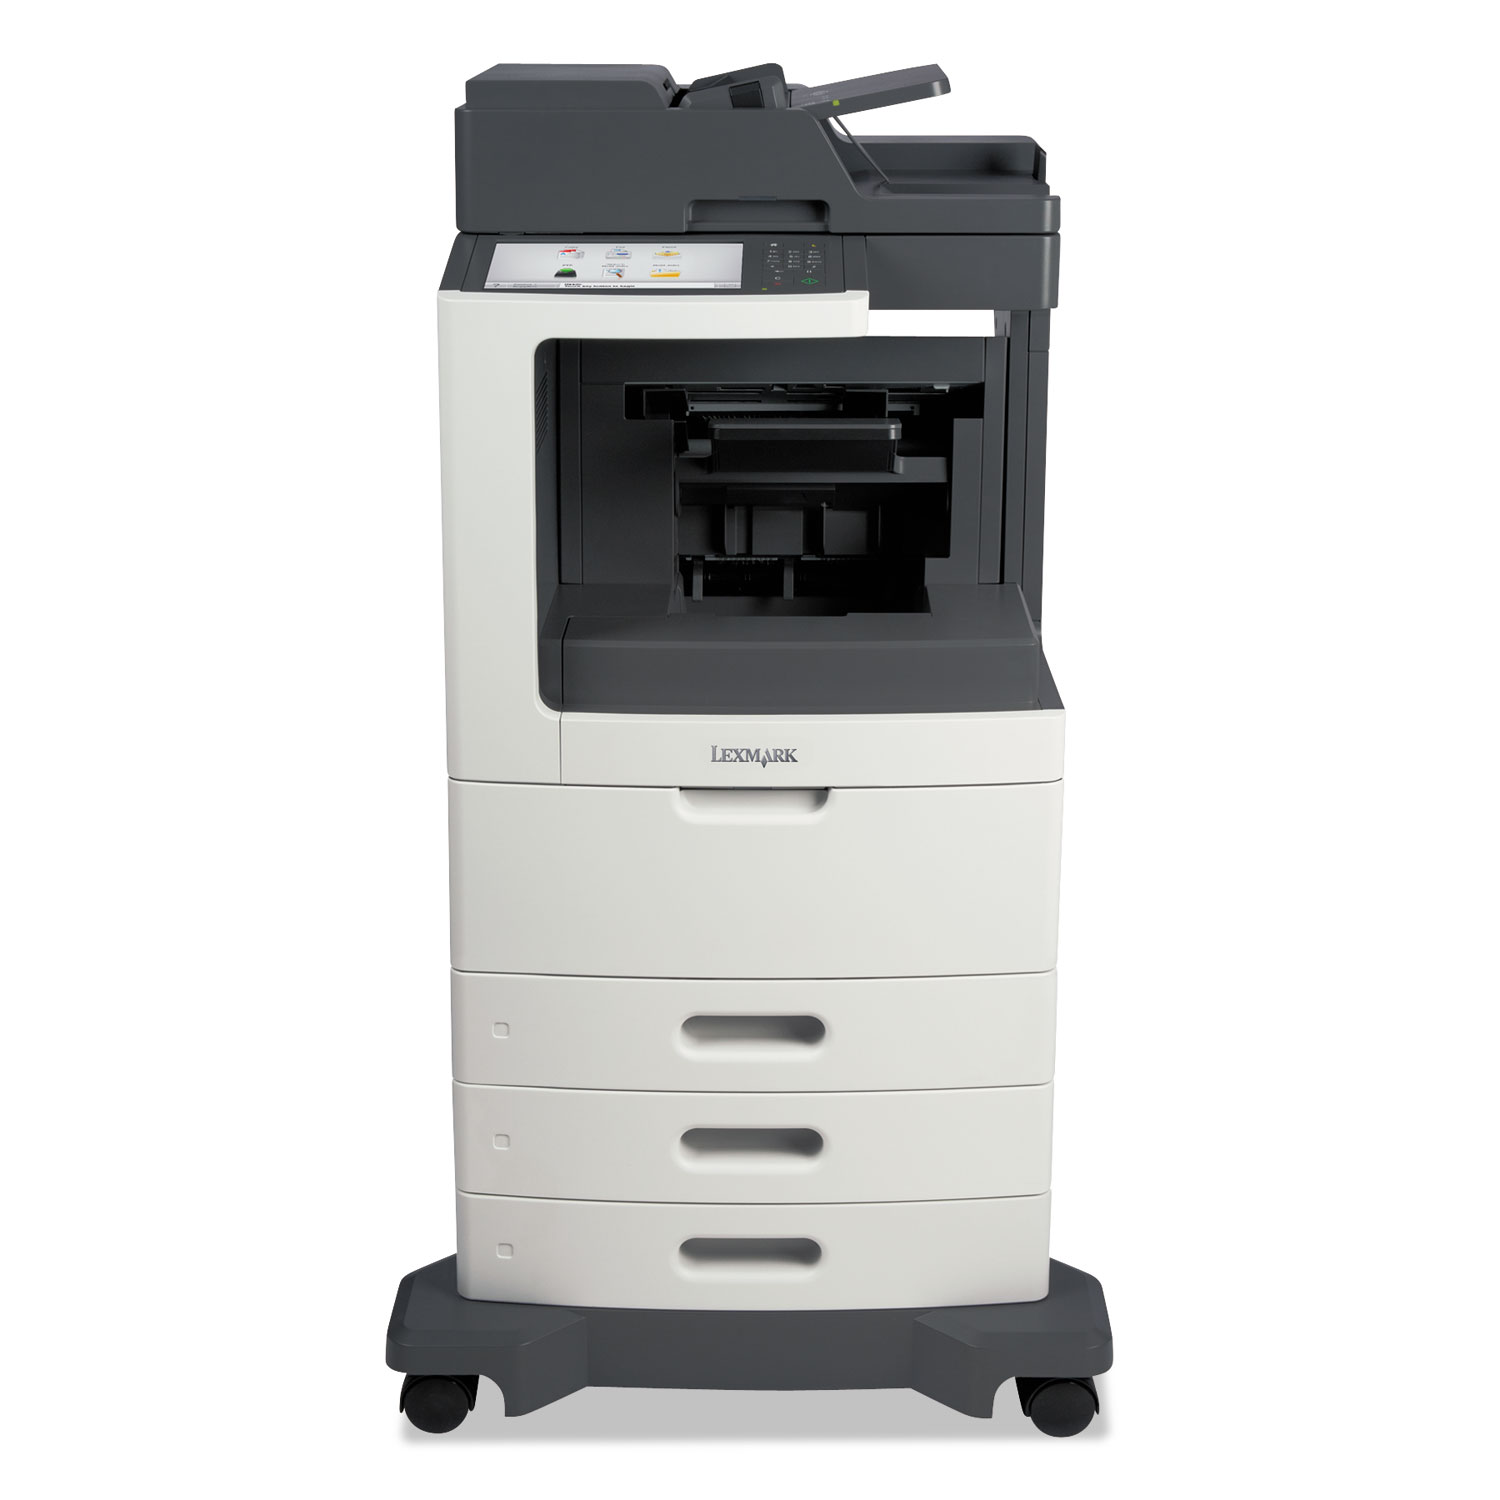 MX811dtfe Multifunction Laser Printer, Copy/Fax/Print/Scan